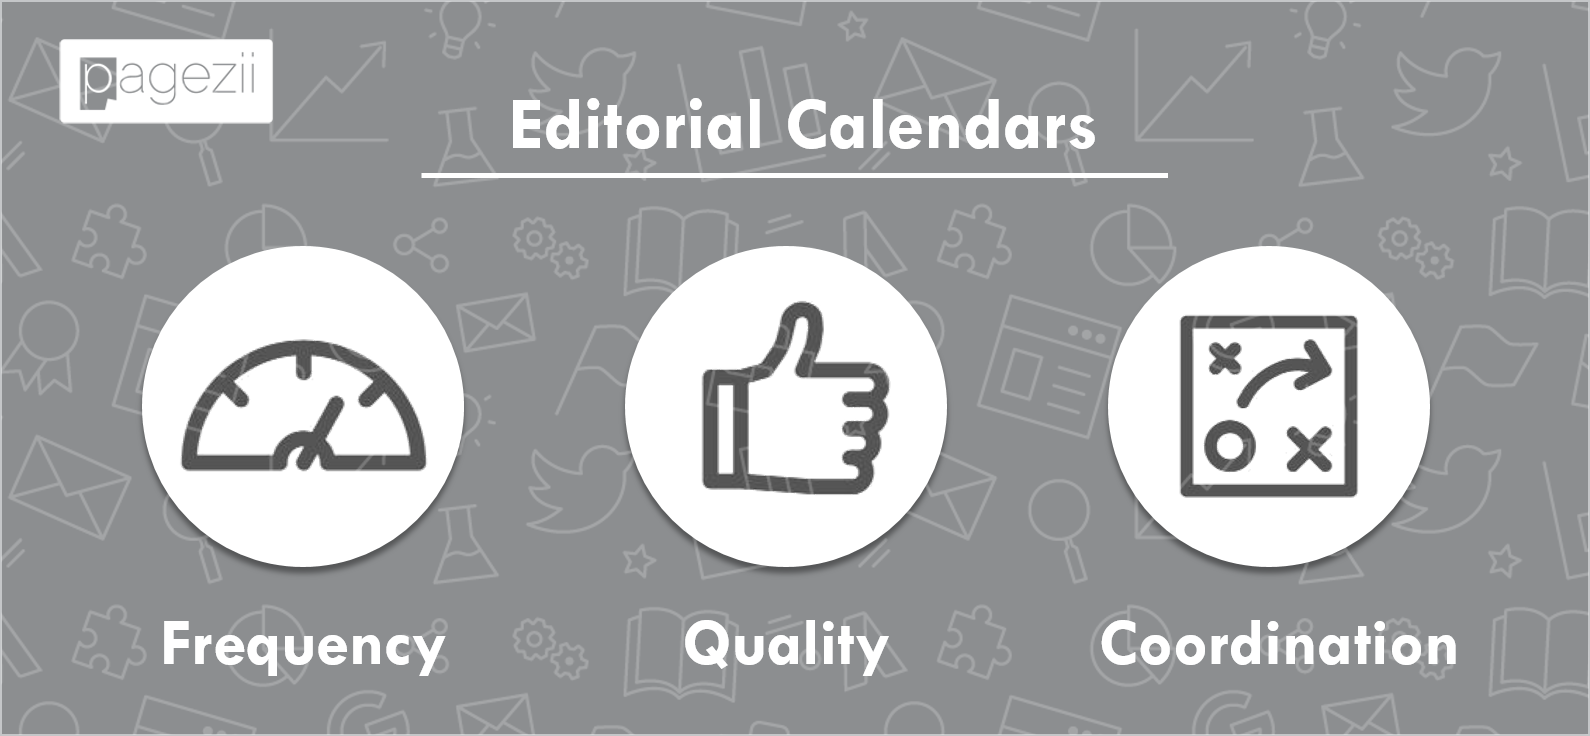 content calendars easy blogging tips from experts